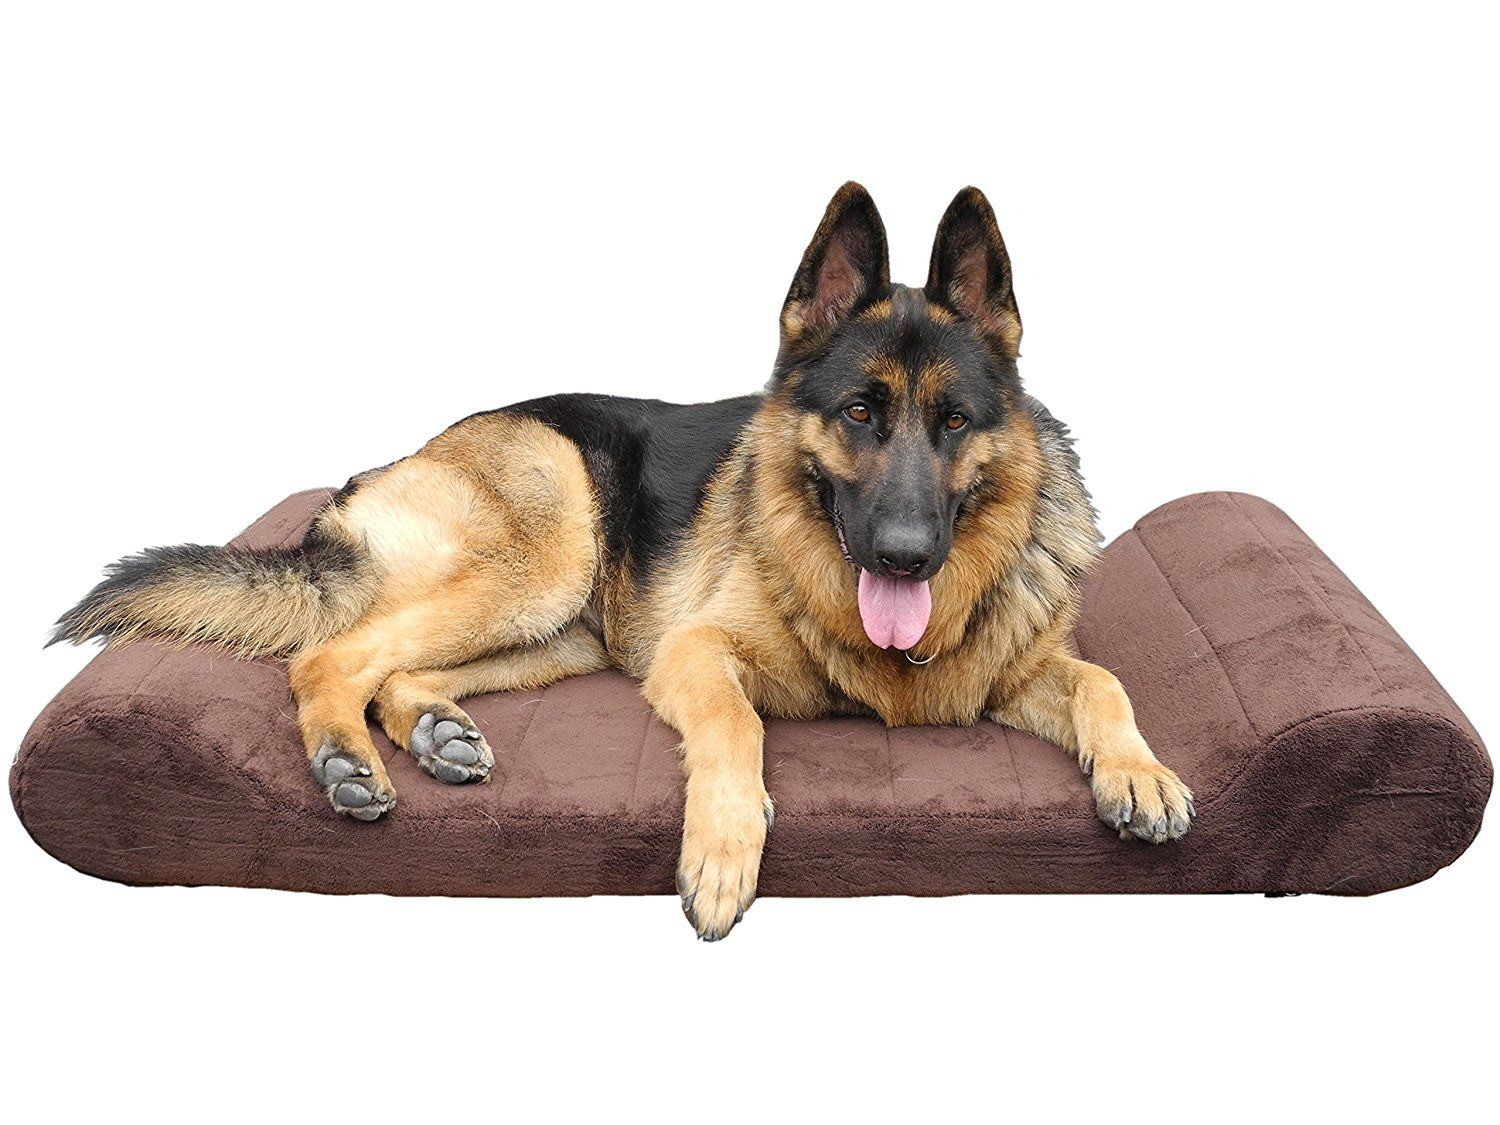 Go Pet Club Hh 34 Pet Sofa Brown Read More Reviews Of The Product By Visiting The Link On The Image This Is An Affiliate With Images Pets Pet Sofa Orthopedic